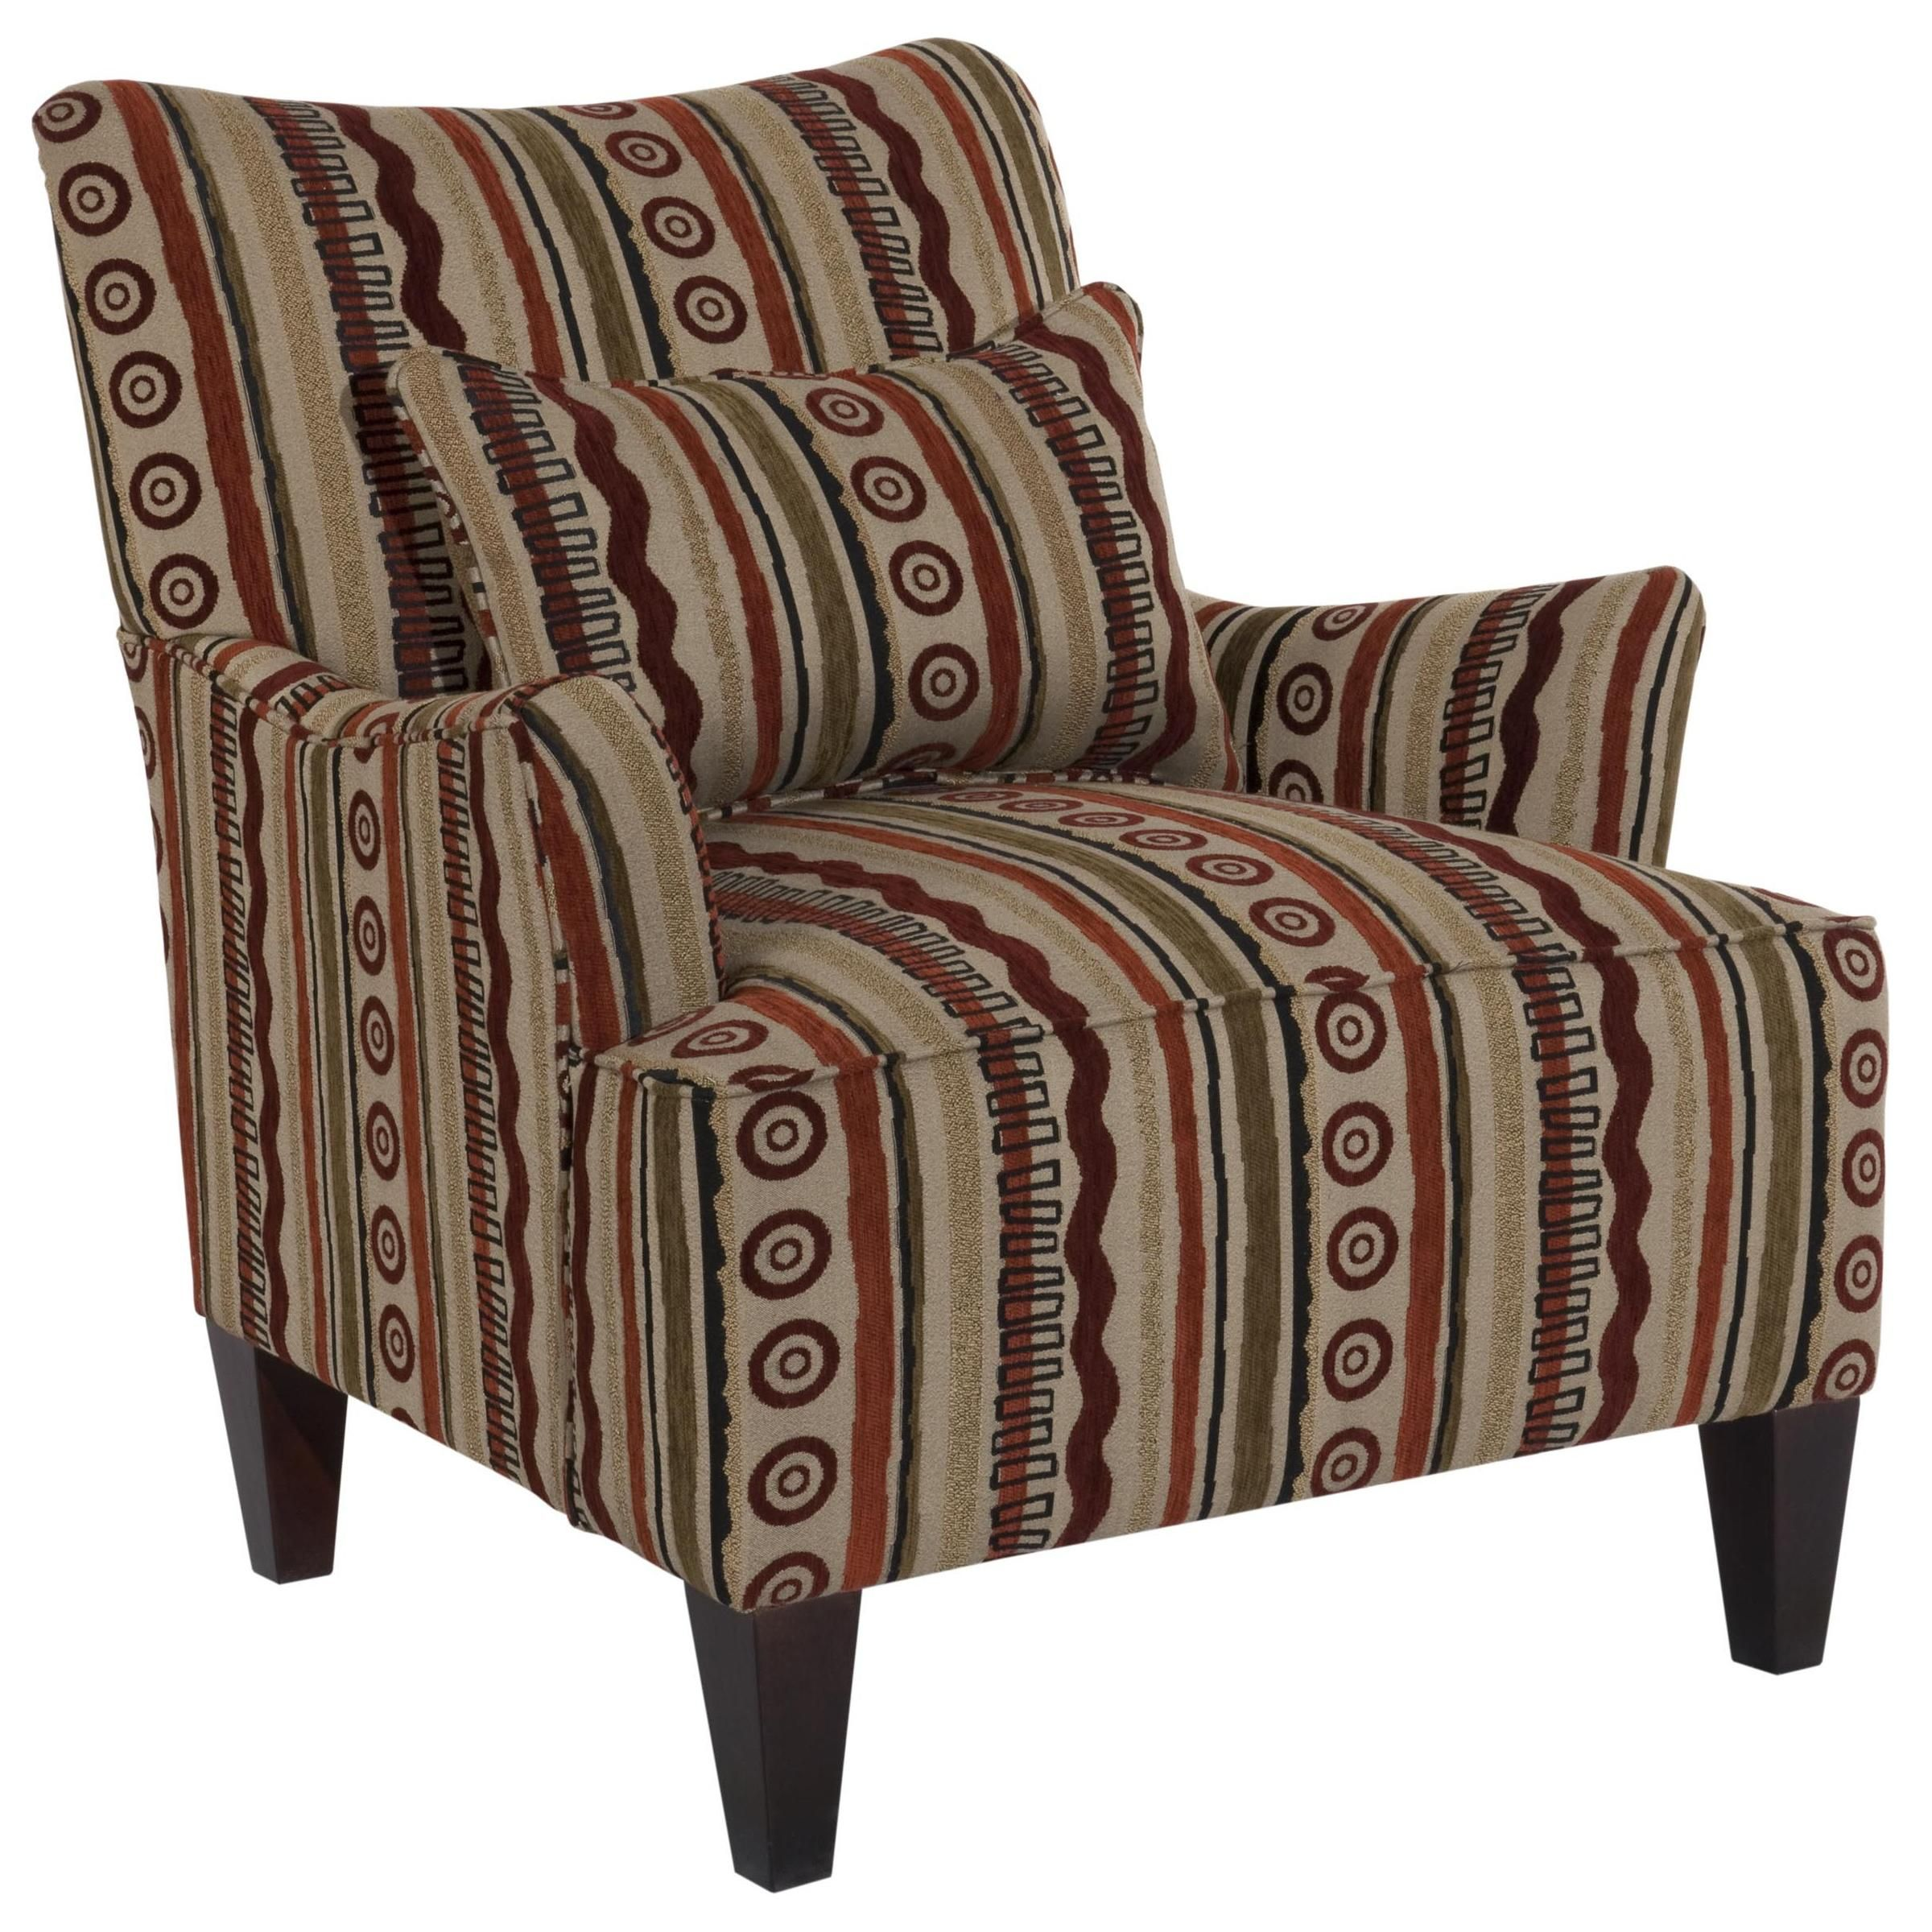 The Perfect Accent Chair! Tessie Chair By Broyhill Furniture